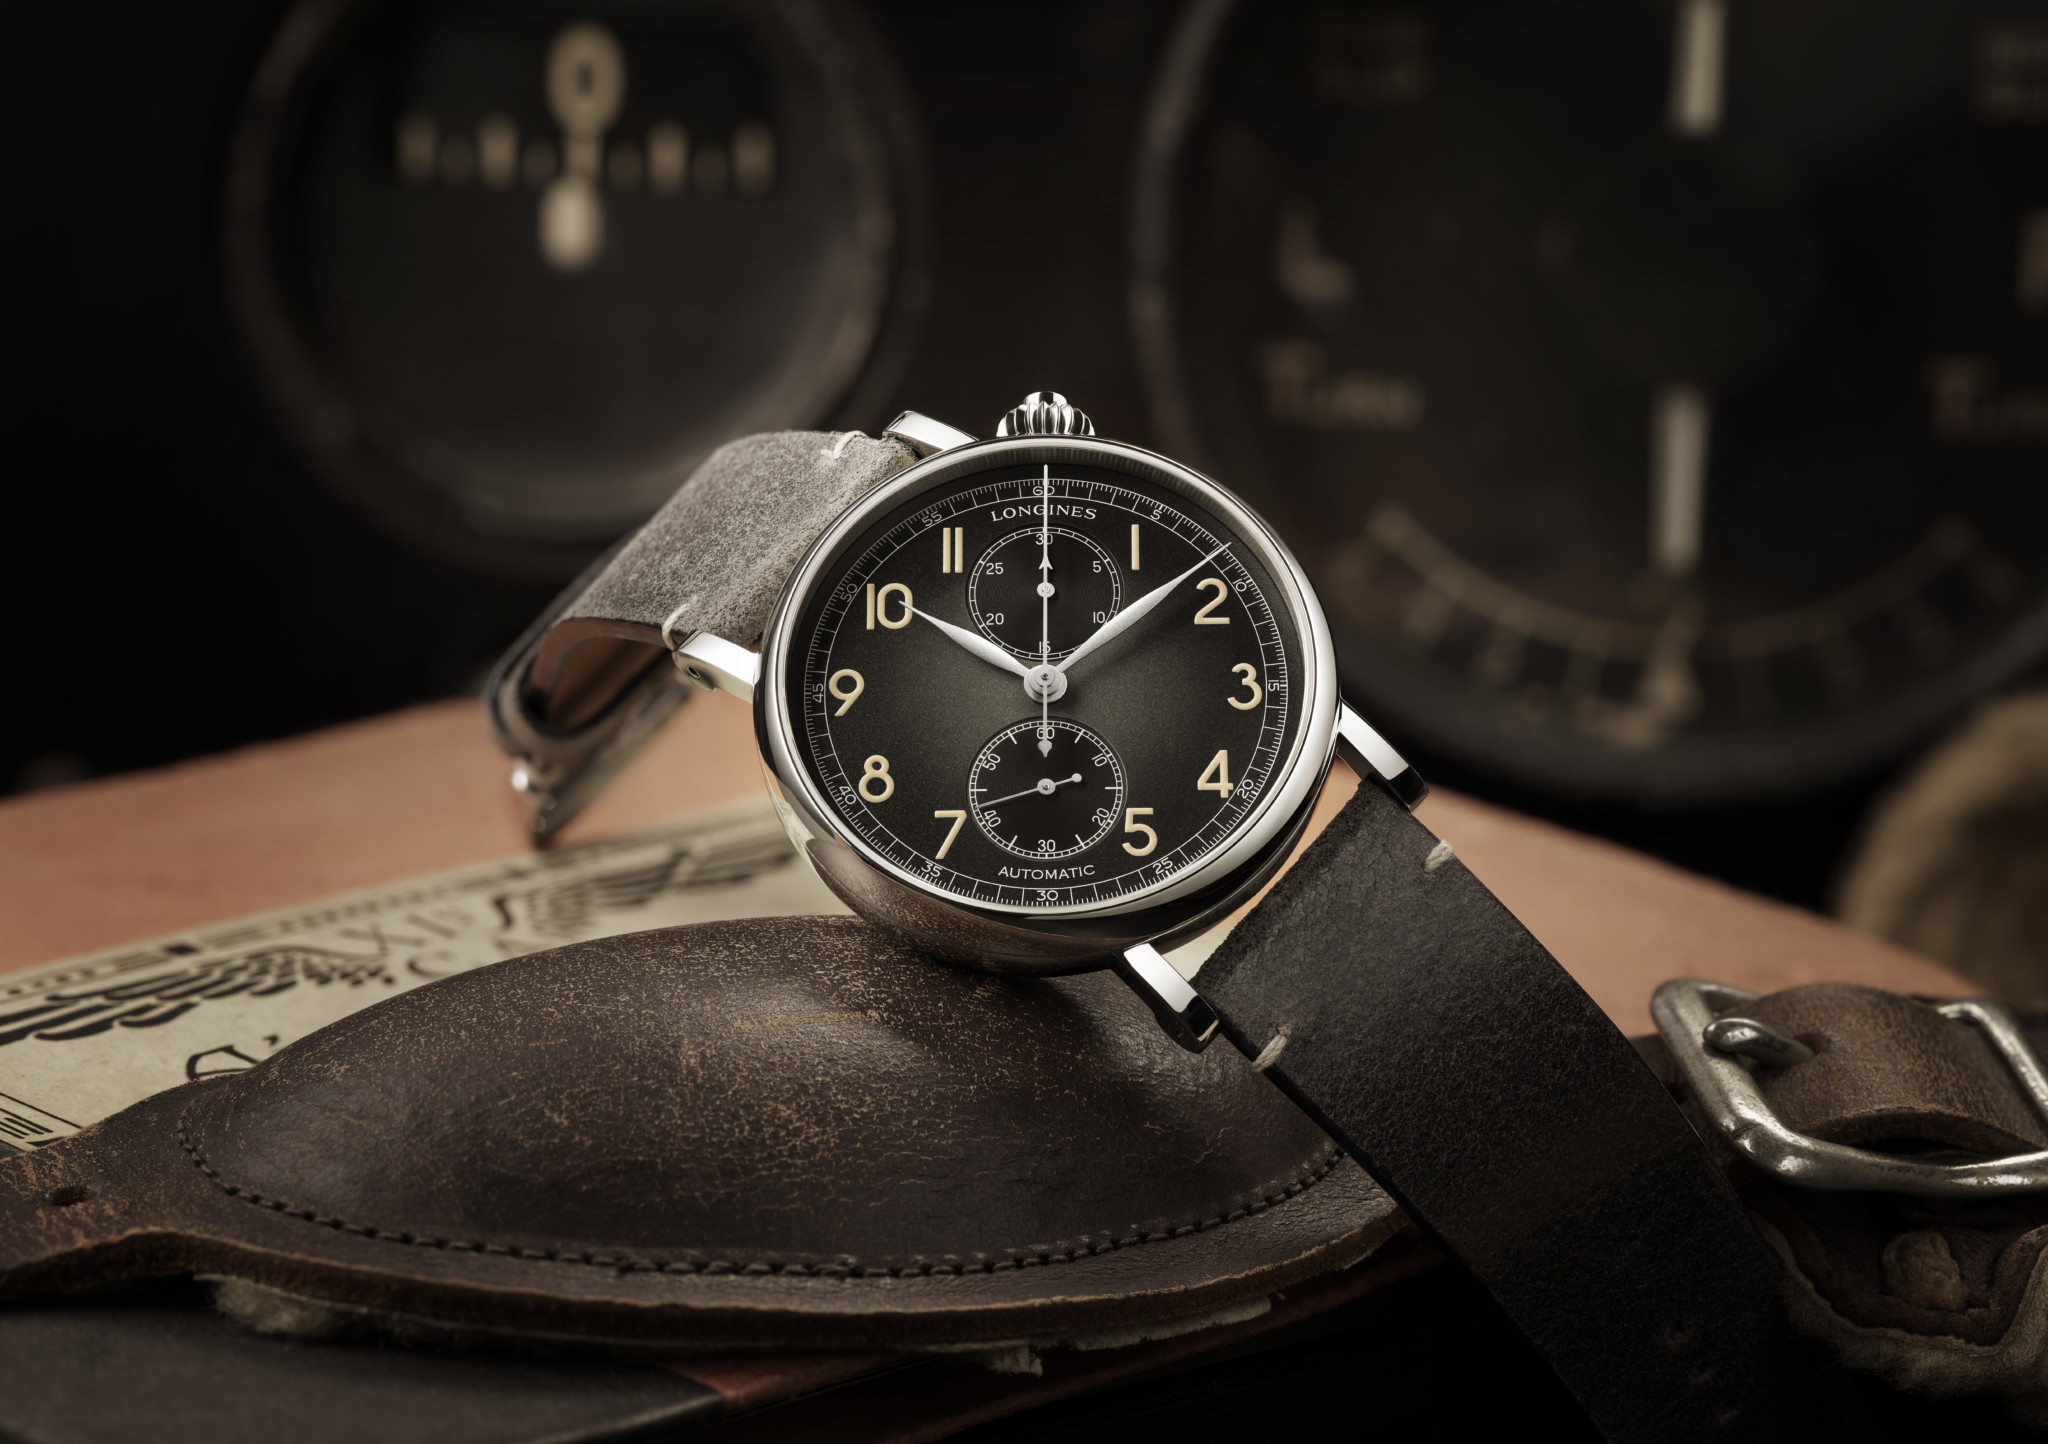 Montre_aviation_788_L2_823_4_53_2_ambiance_PR_